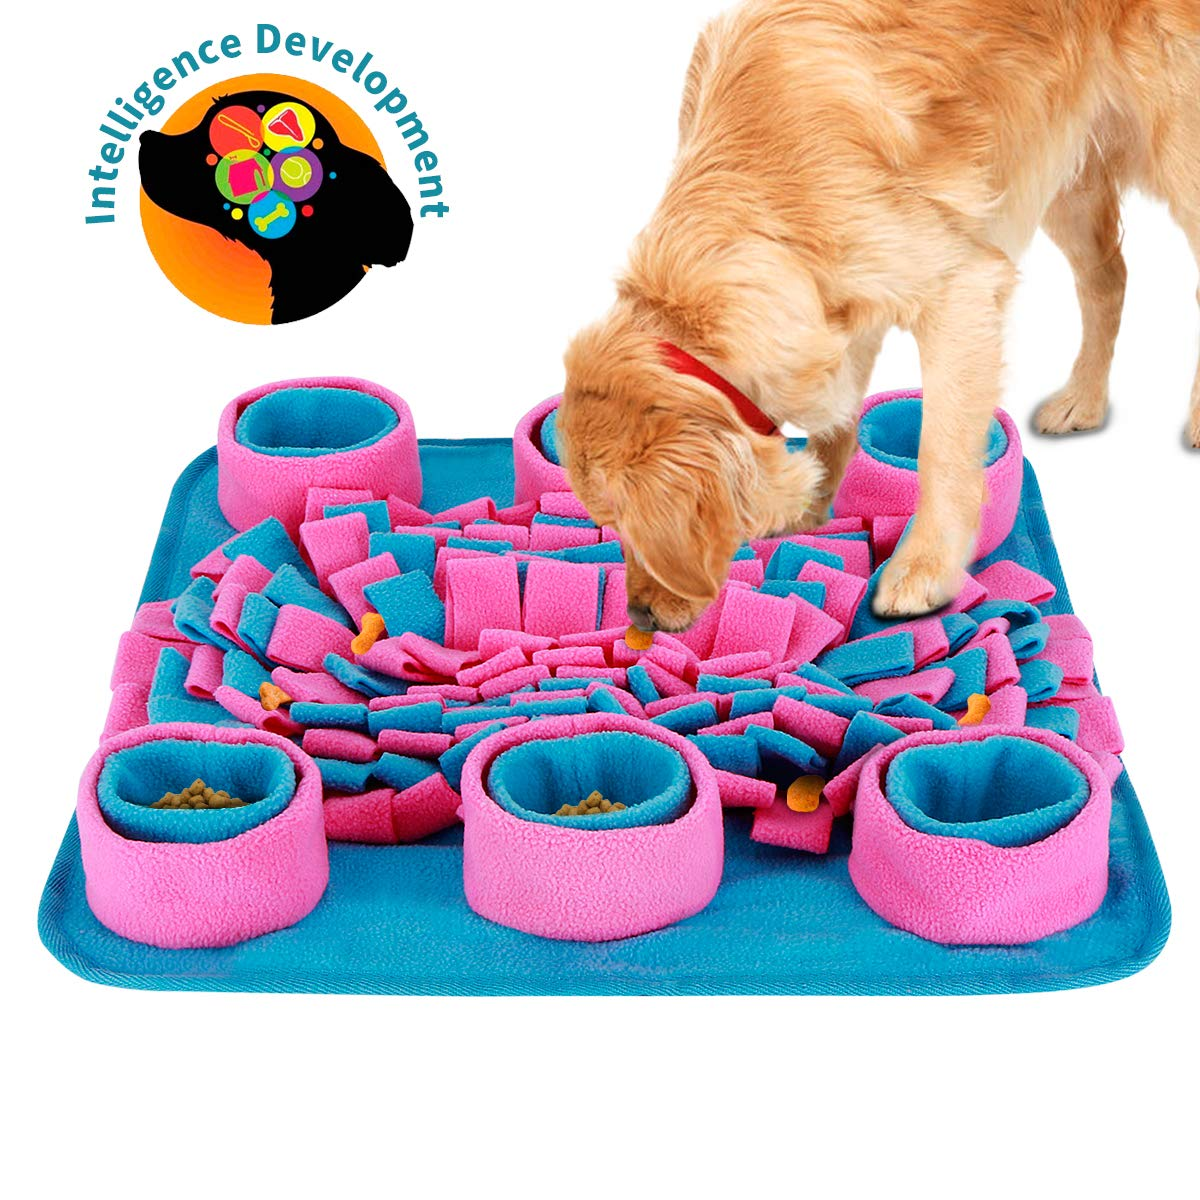 Snuffle Mat for Dogs, Dogs Slow Feeding Training, Encourages Natural Foraging Skills, Pet Play Puppy Interactive Puzzle Toys, Durable and Machine Washable, Perfect for Any Breed by LC-dolida